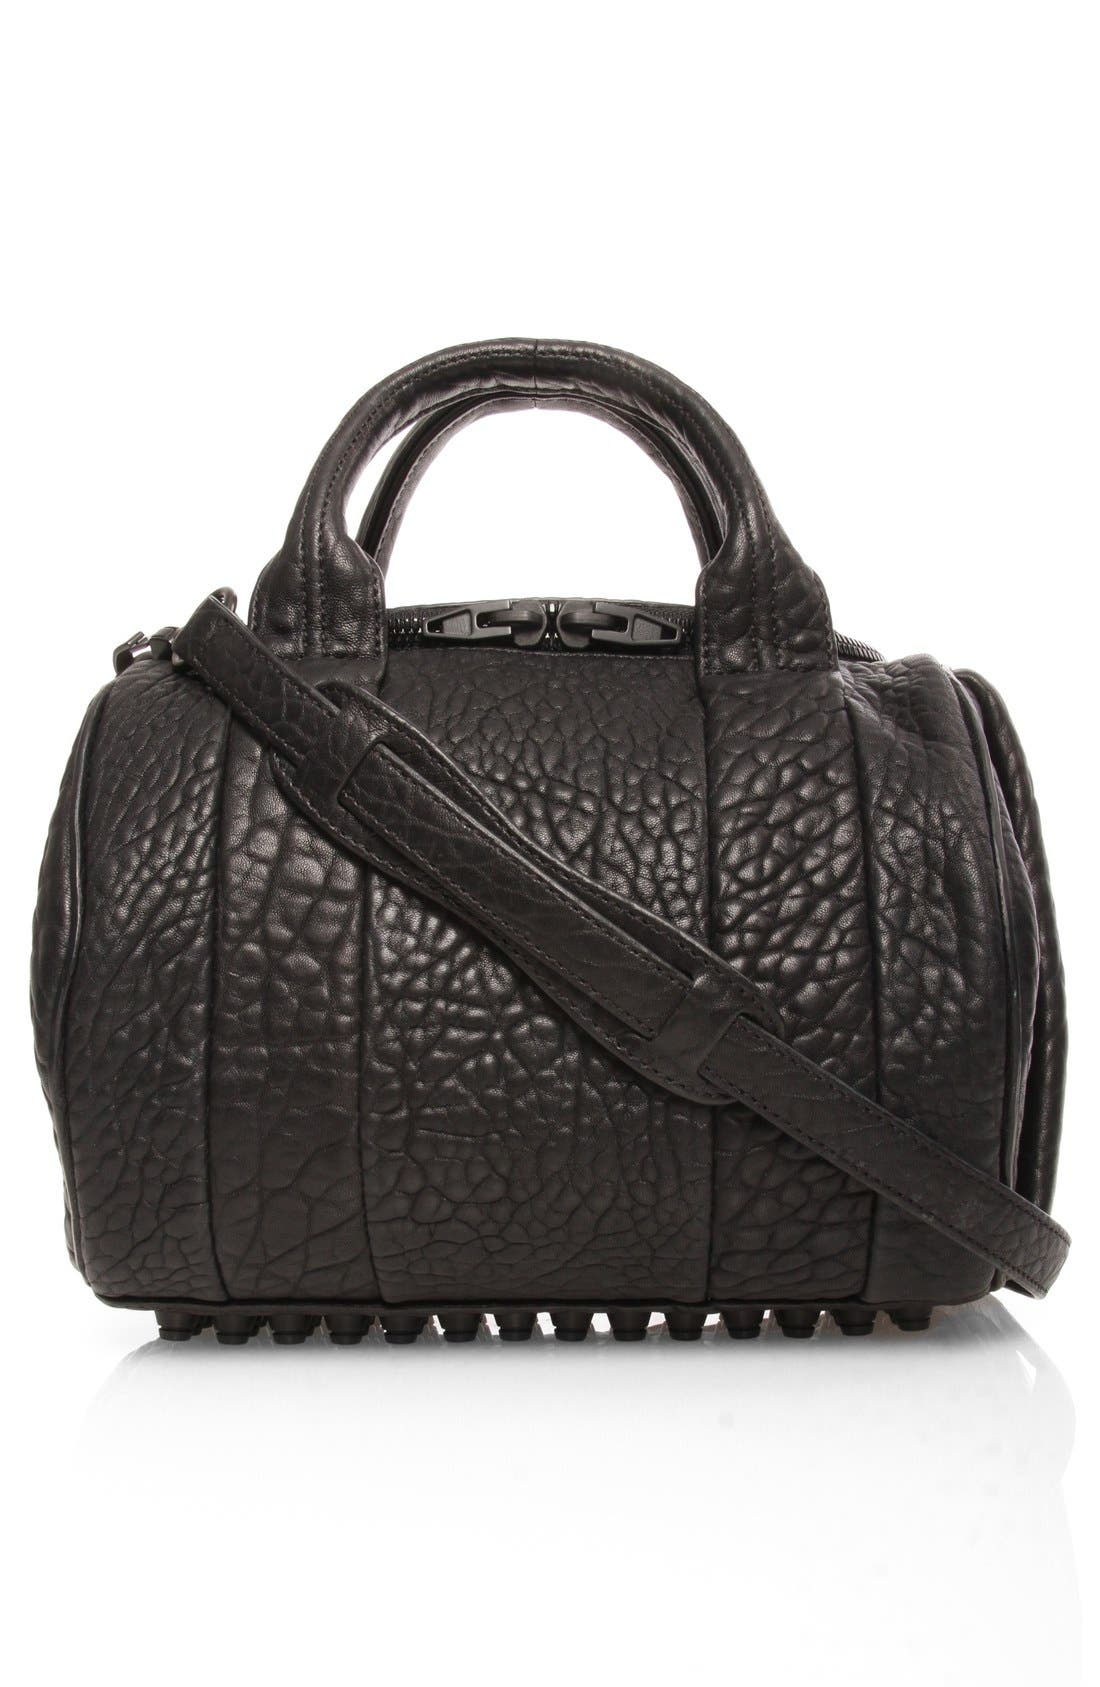 Main Image - Alexander Wang 'Rockie - Matte' Leather Crossbody Satchel